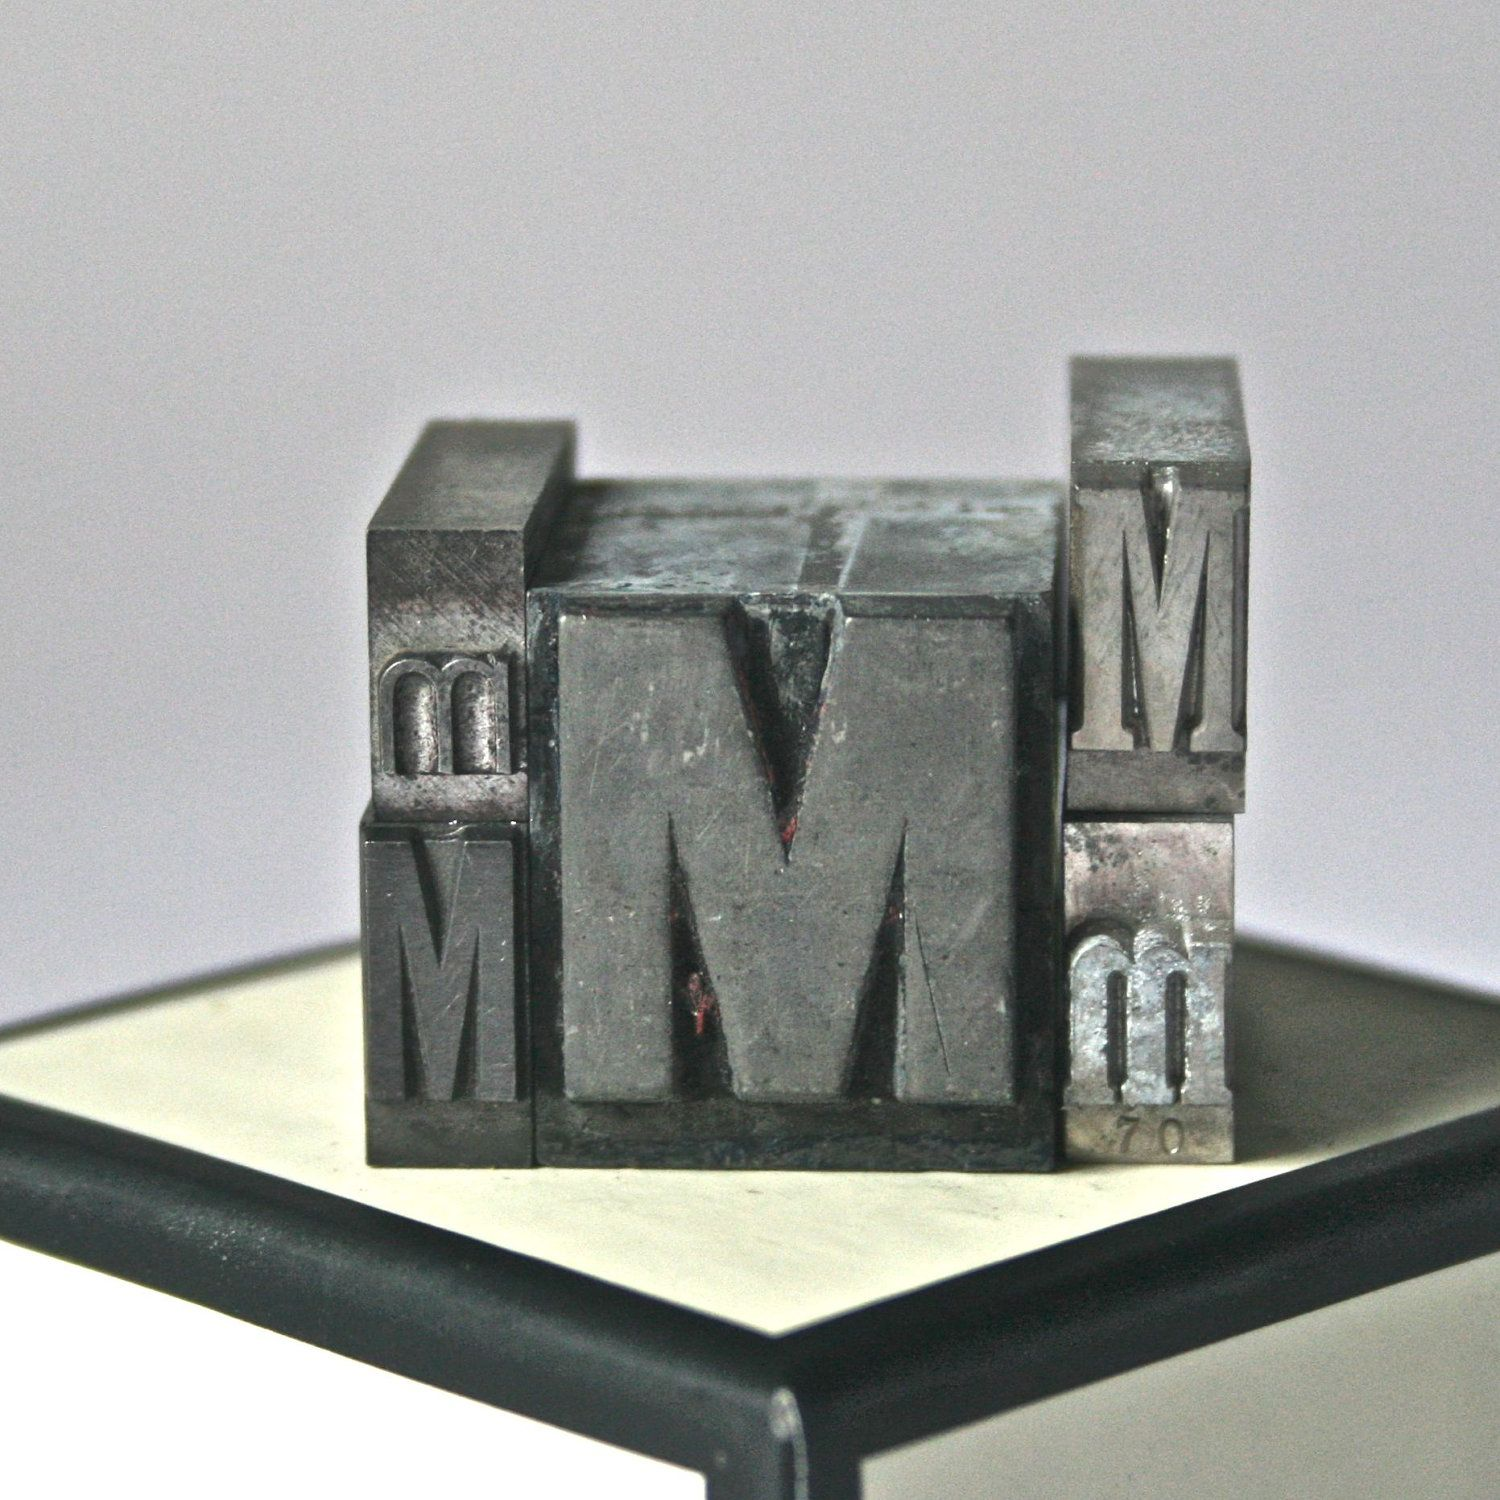 Letter M Antique Printer's Type for Collage by ReminiscencePapers